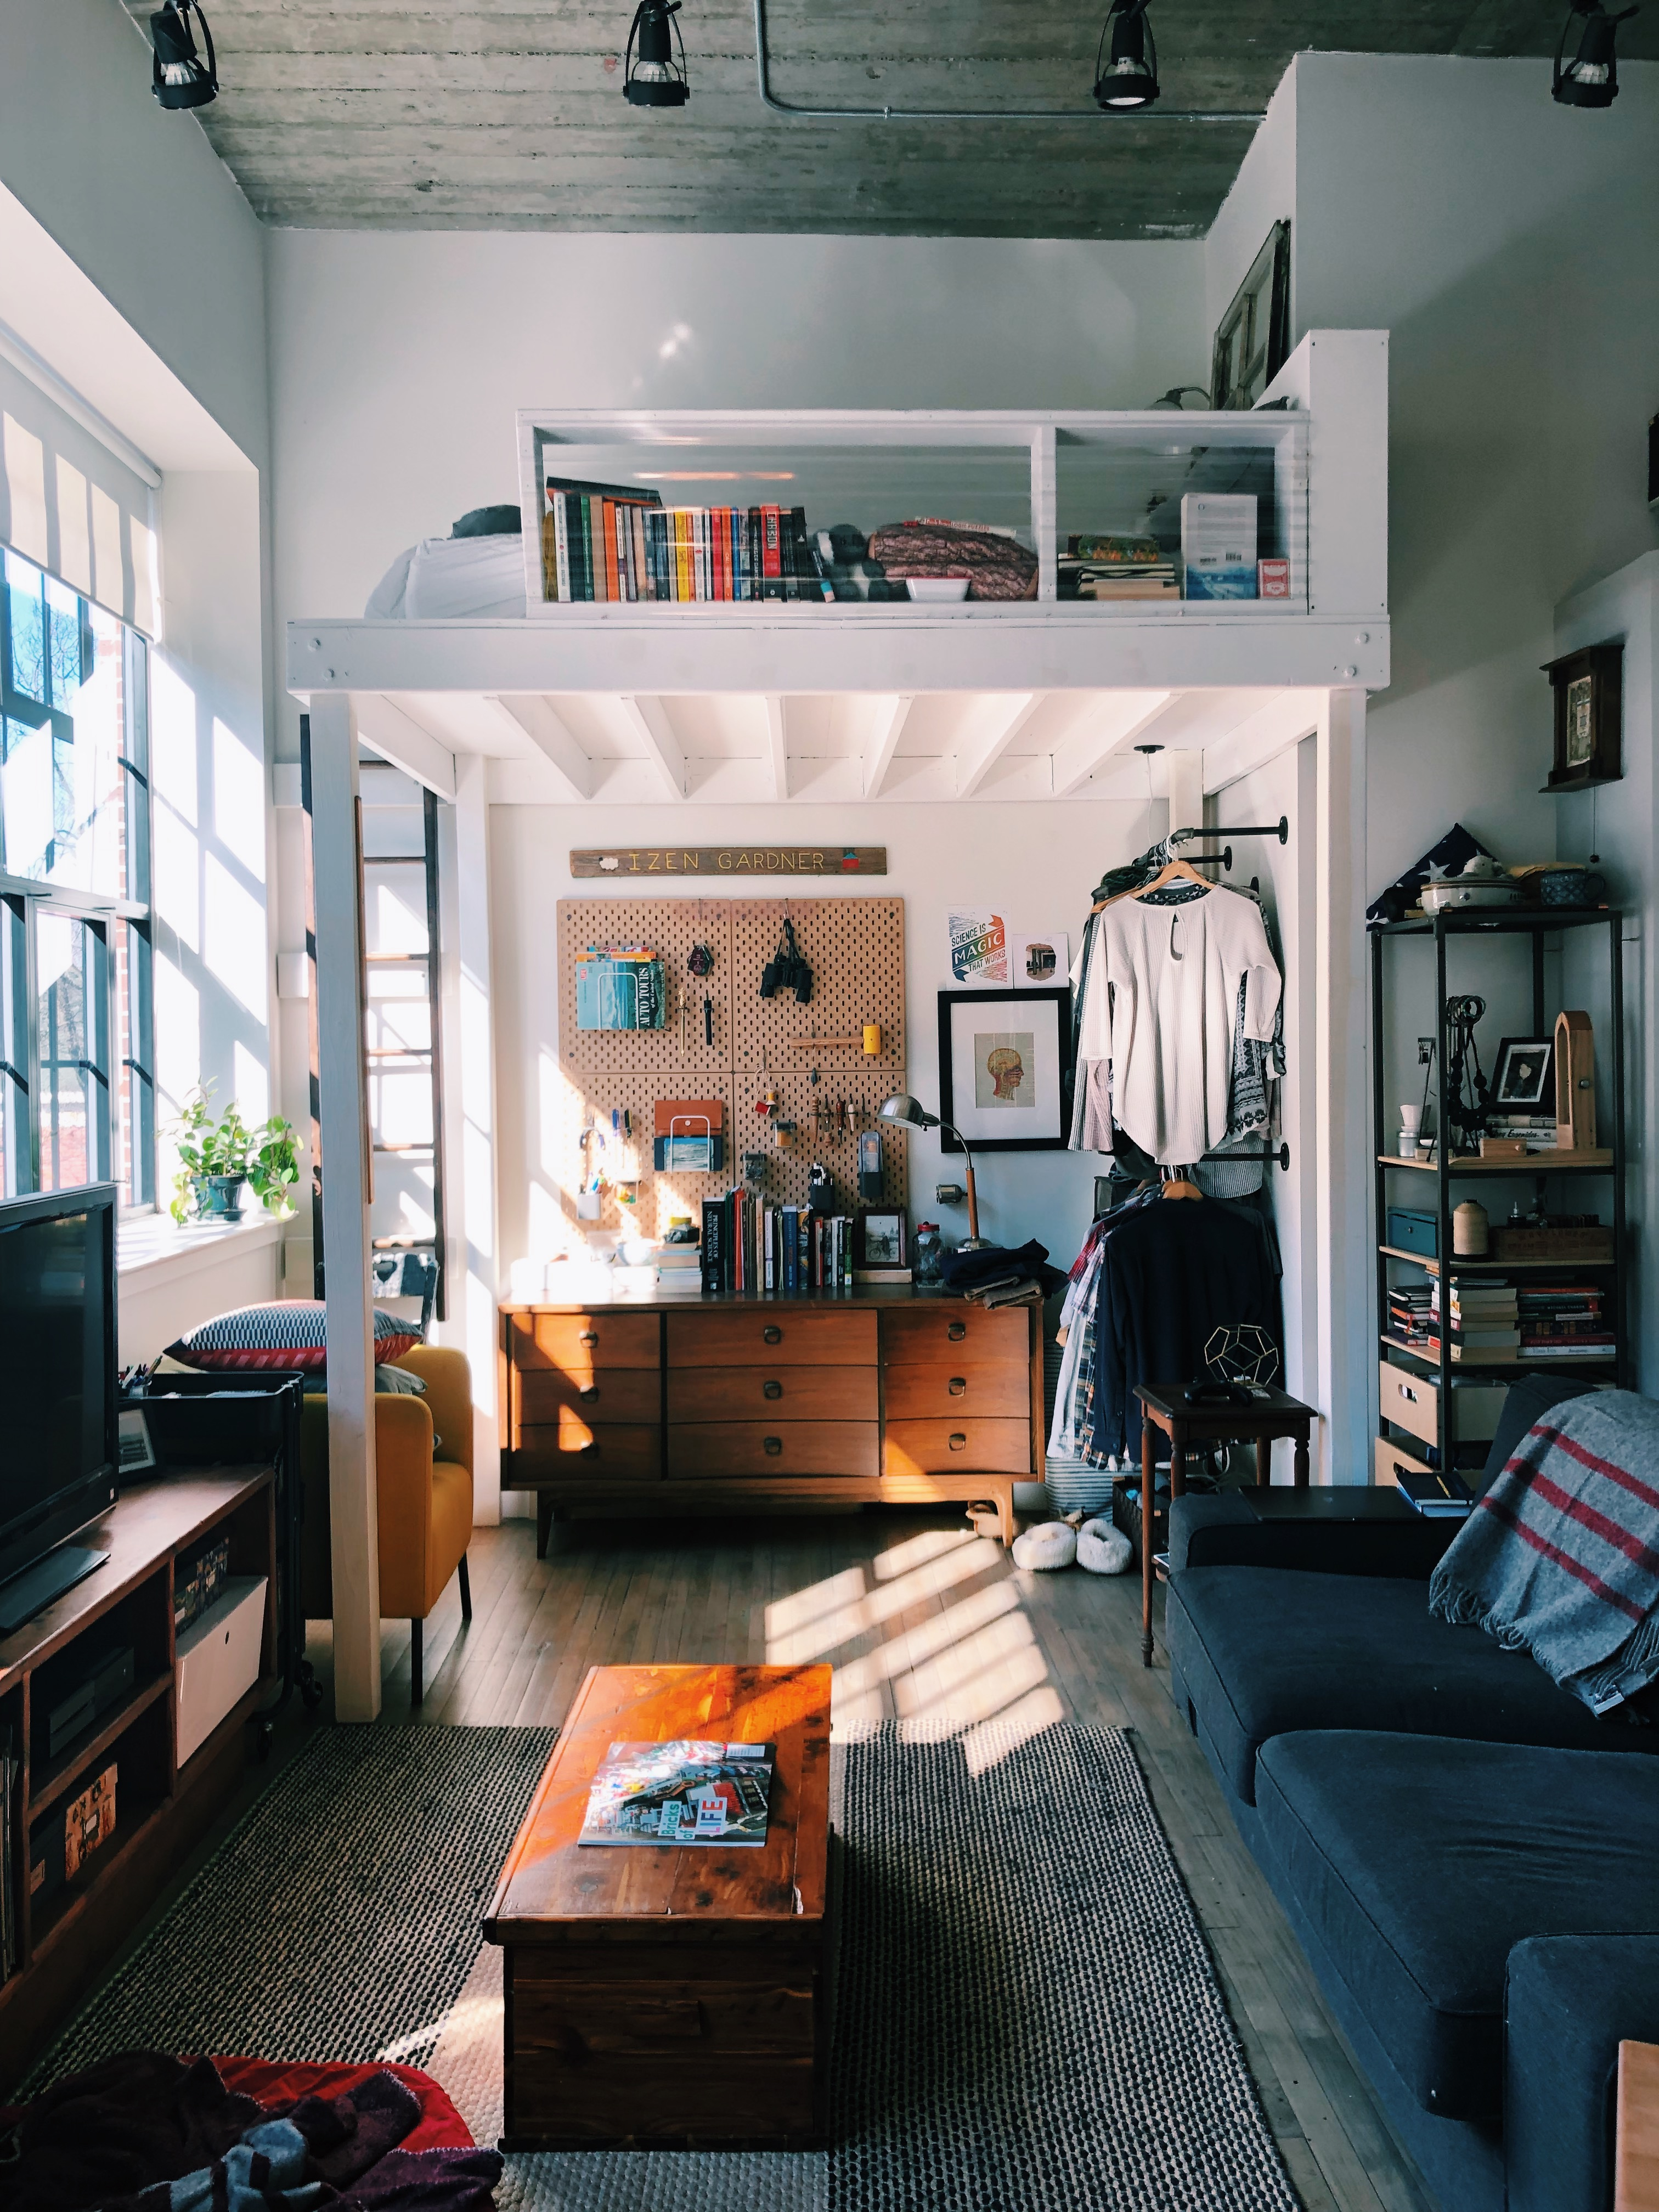 15 Diy Loft Bed Ideas How To Loft A Queen Full Or Twin Bed Apartment Therapy